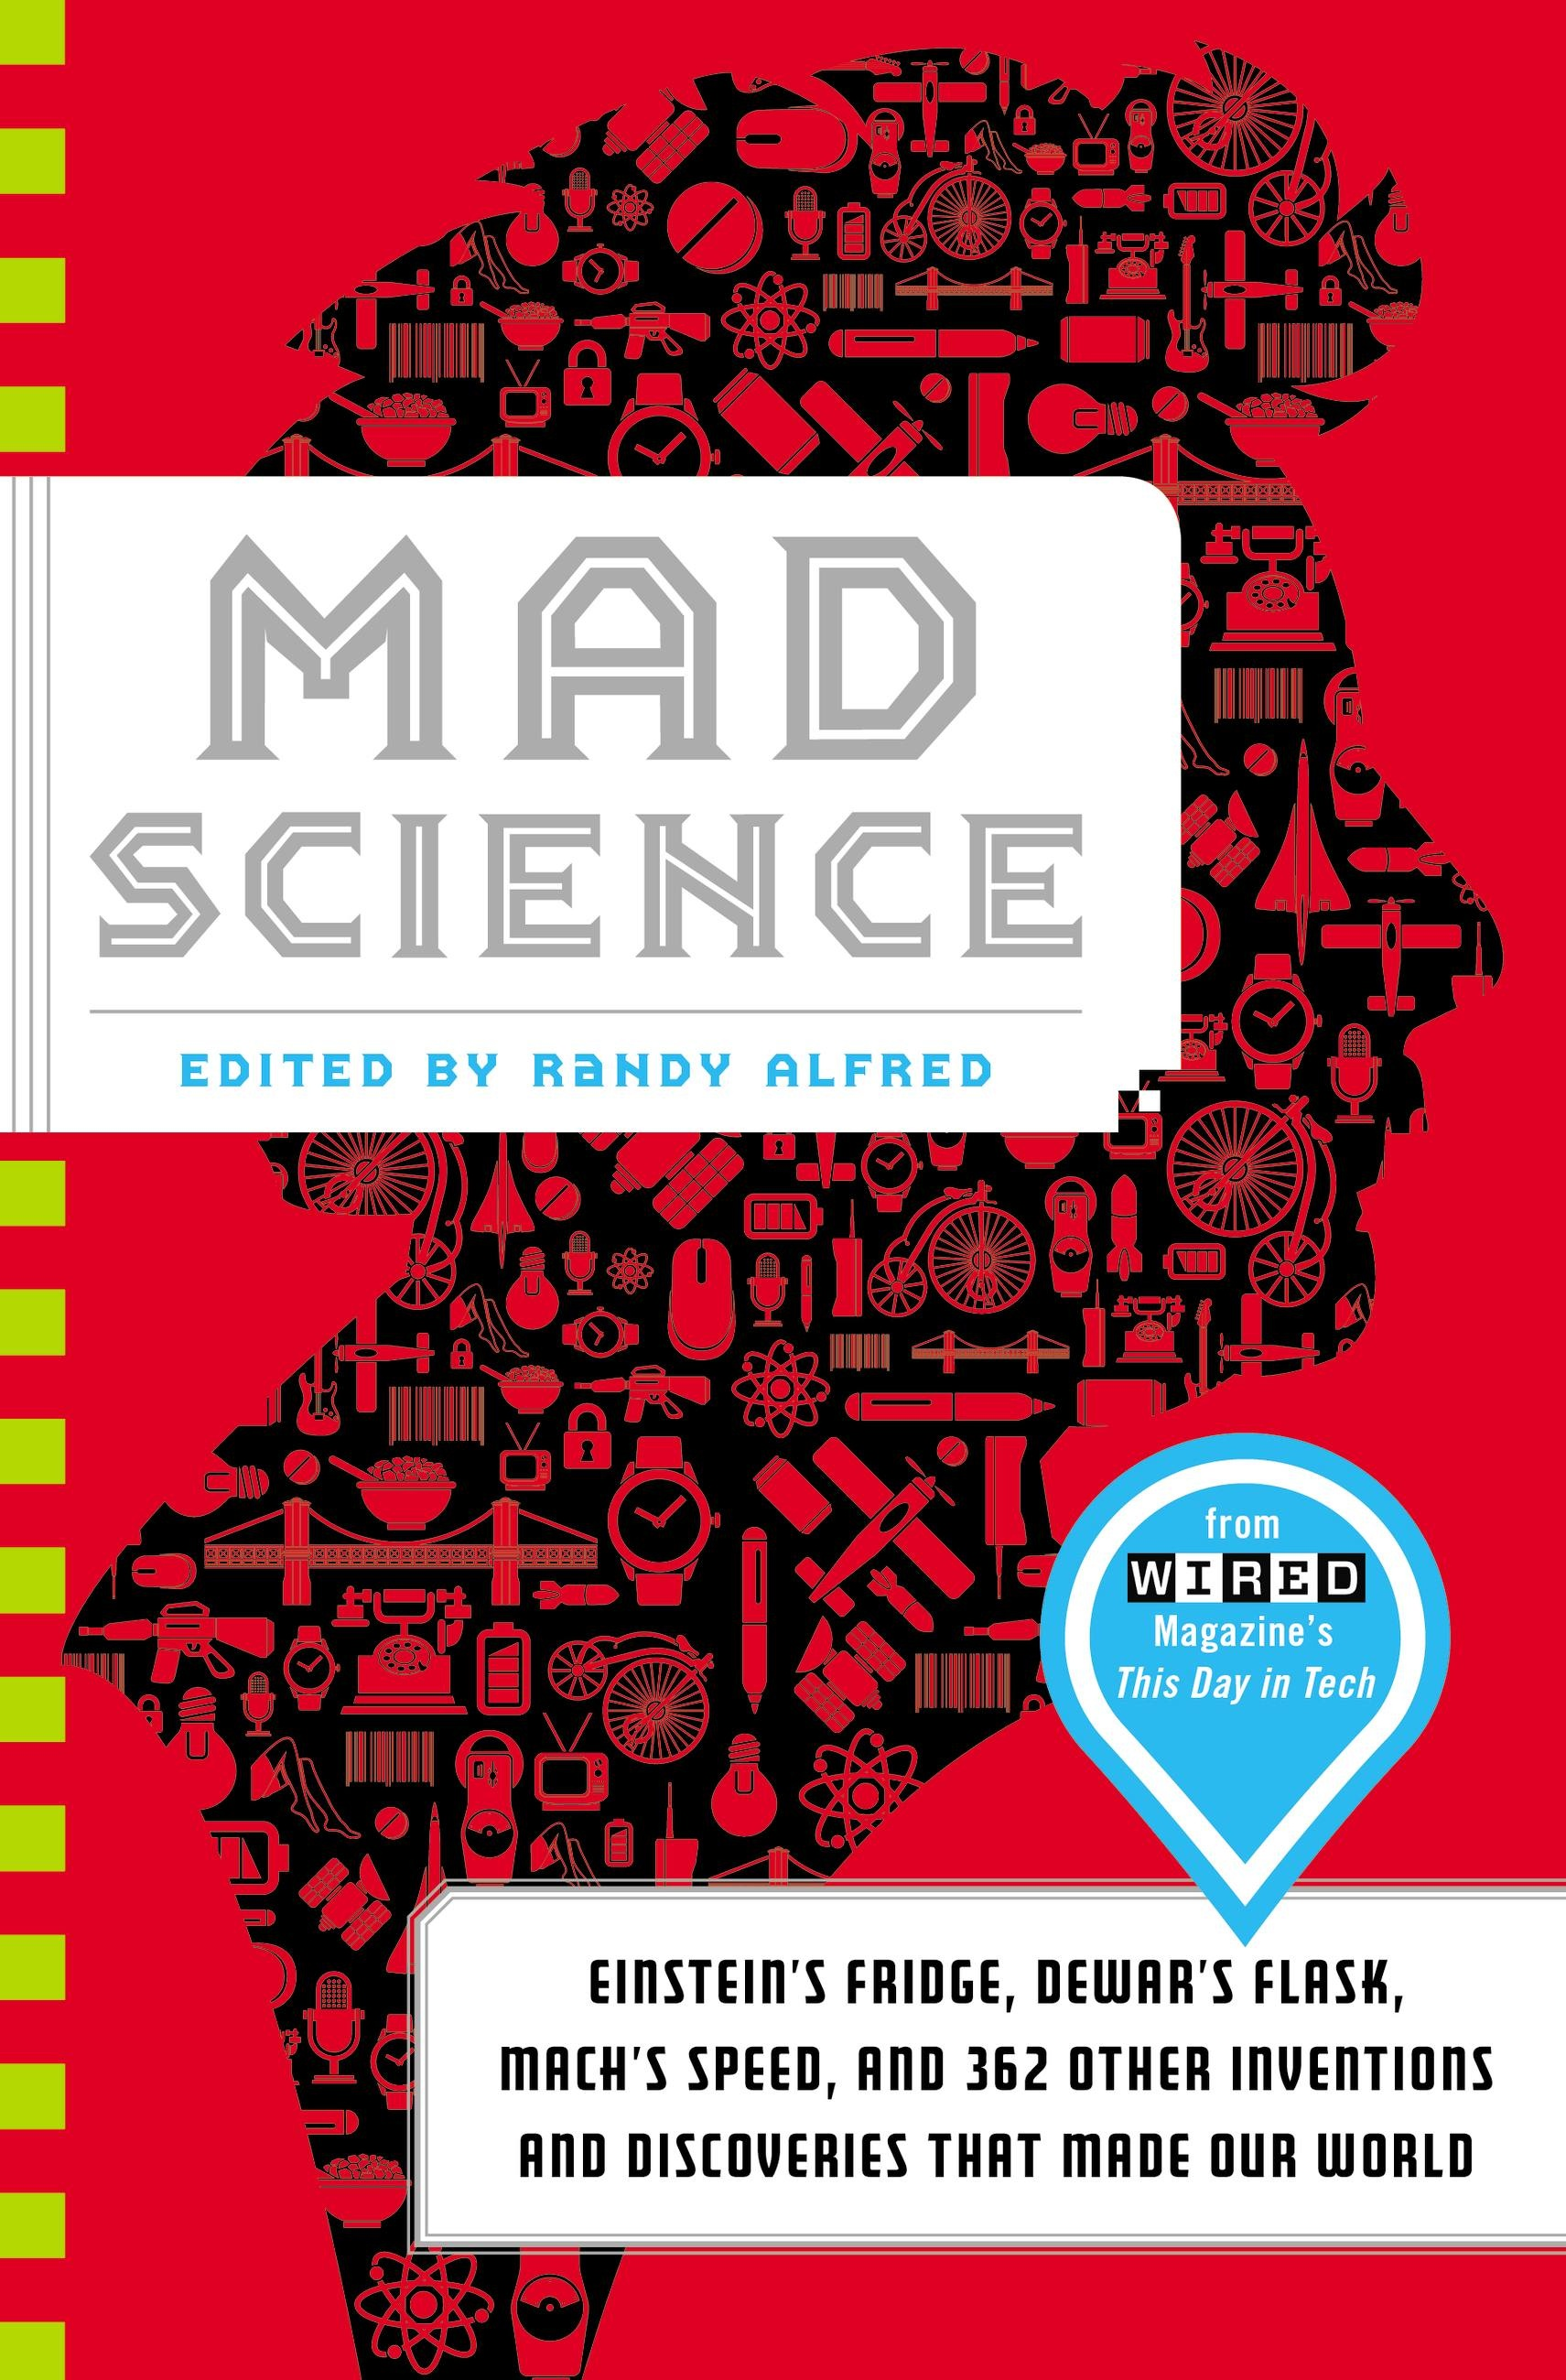 Mad Science by Randy Alfred | Hachette Book Group